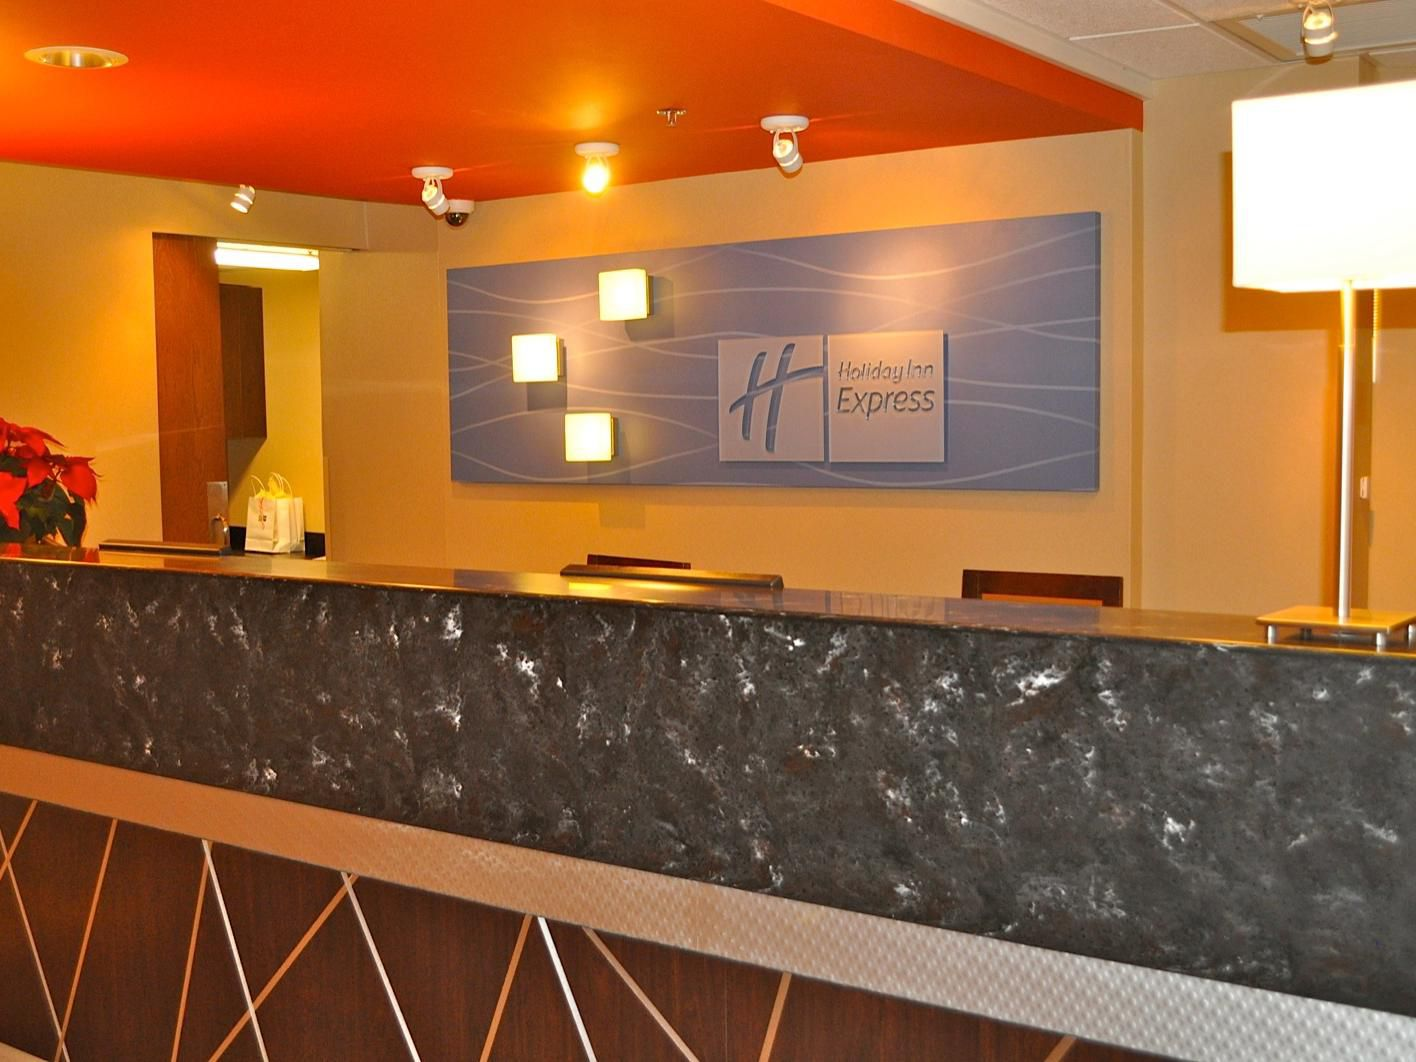 Holiday Inn Express Waterfront Mall Front Desk